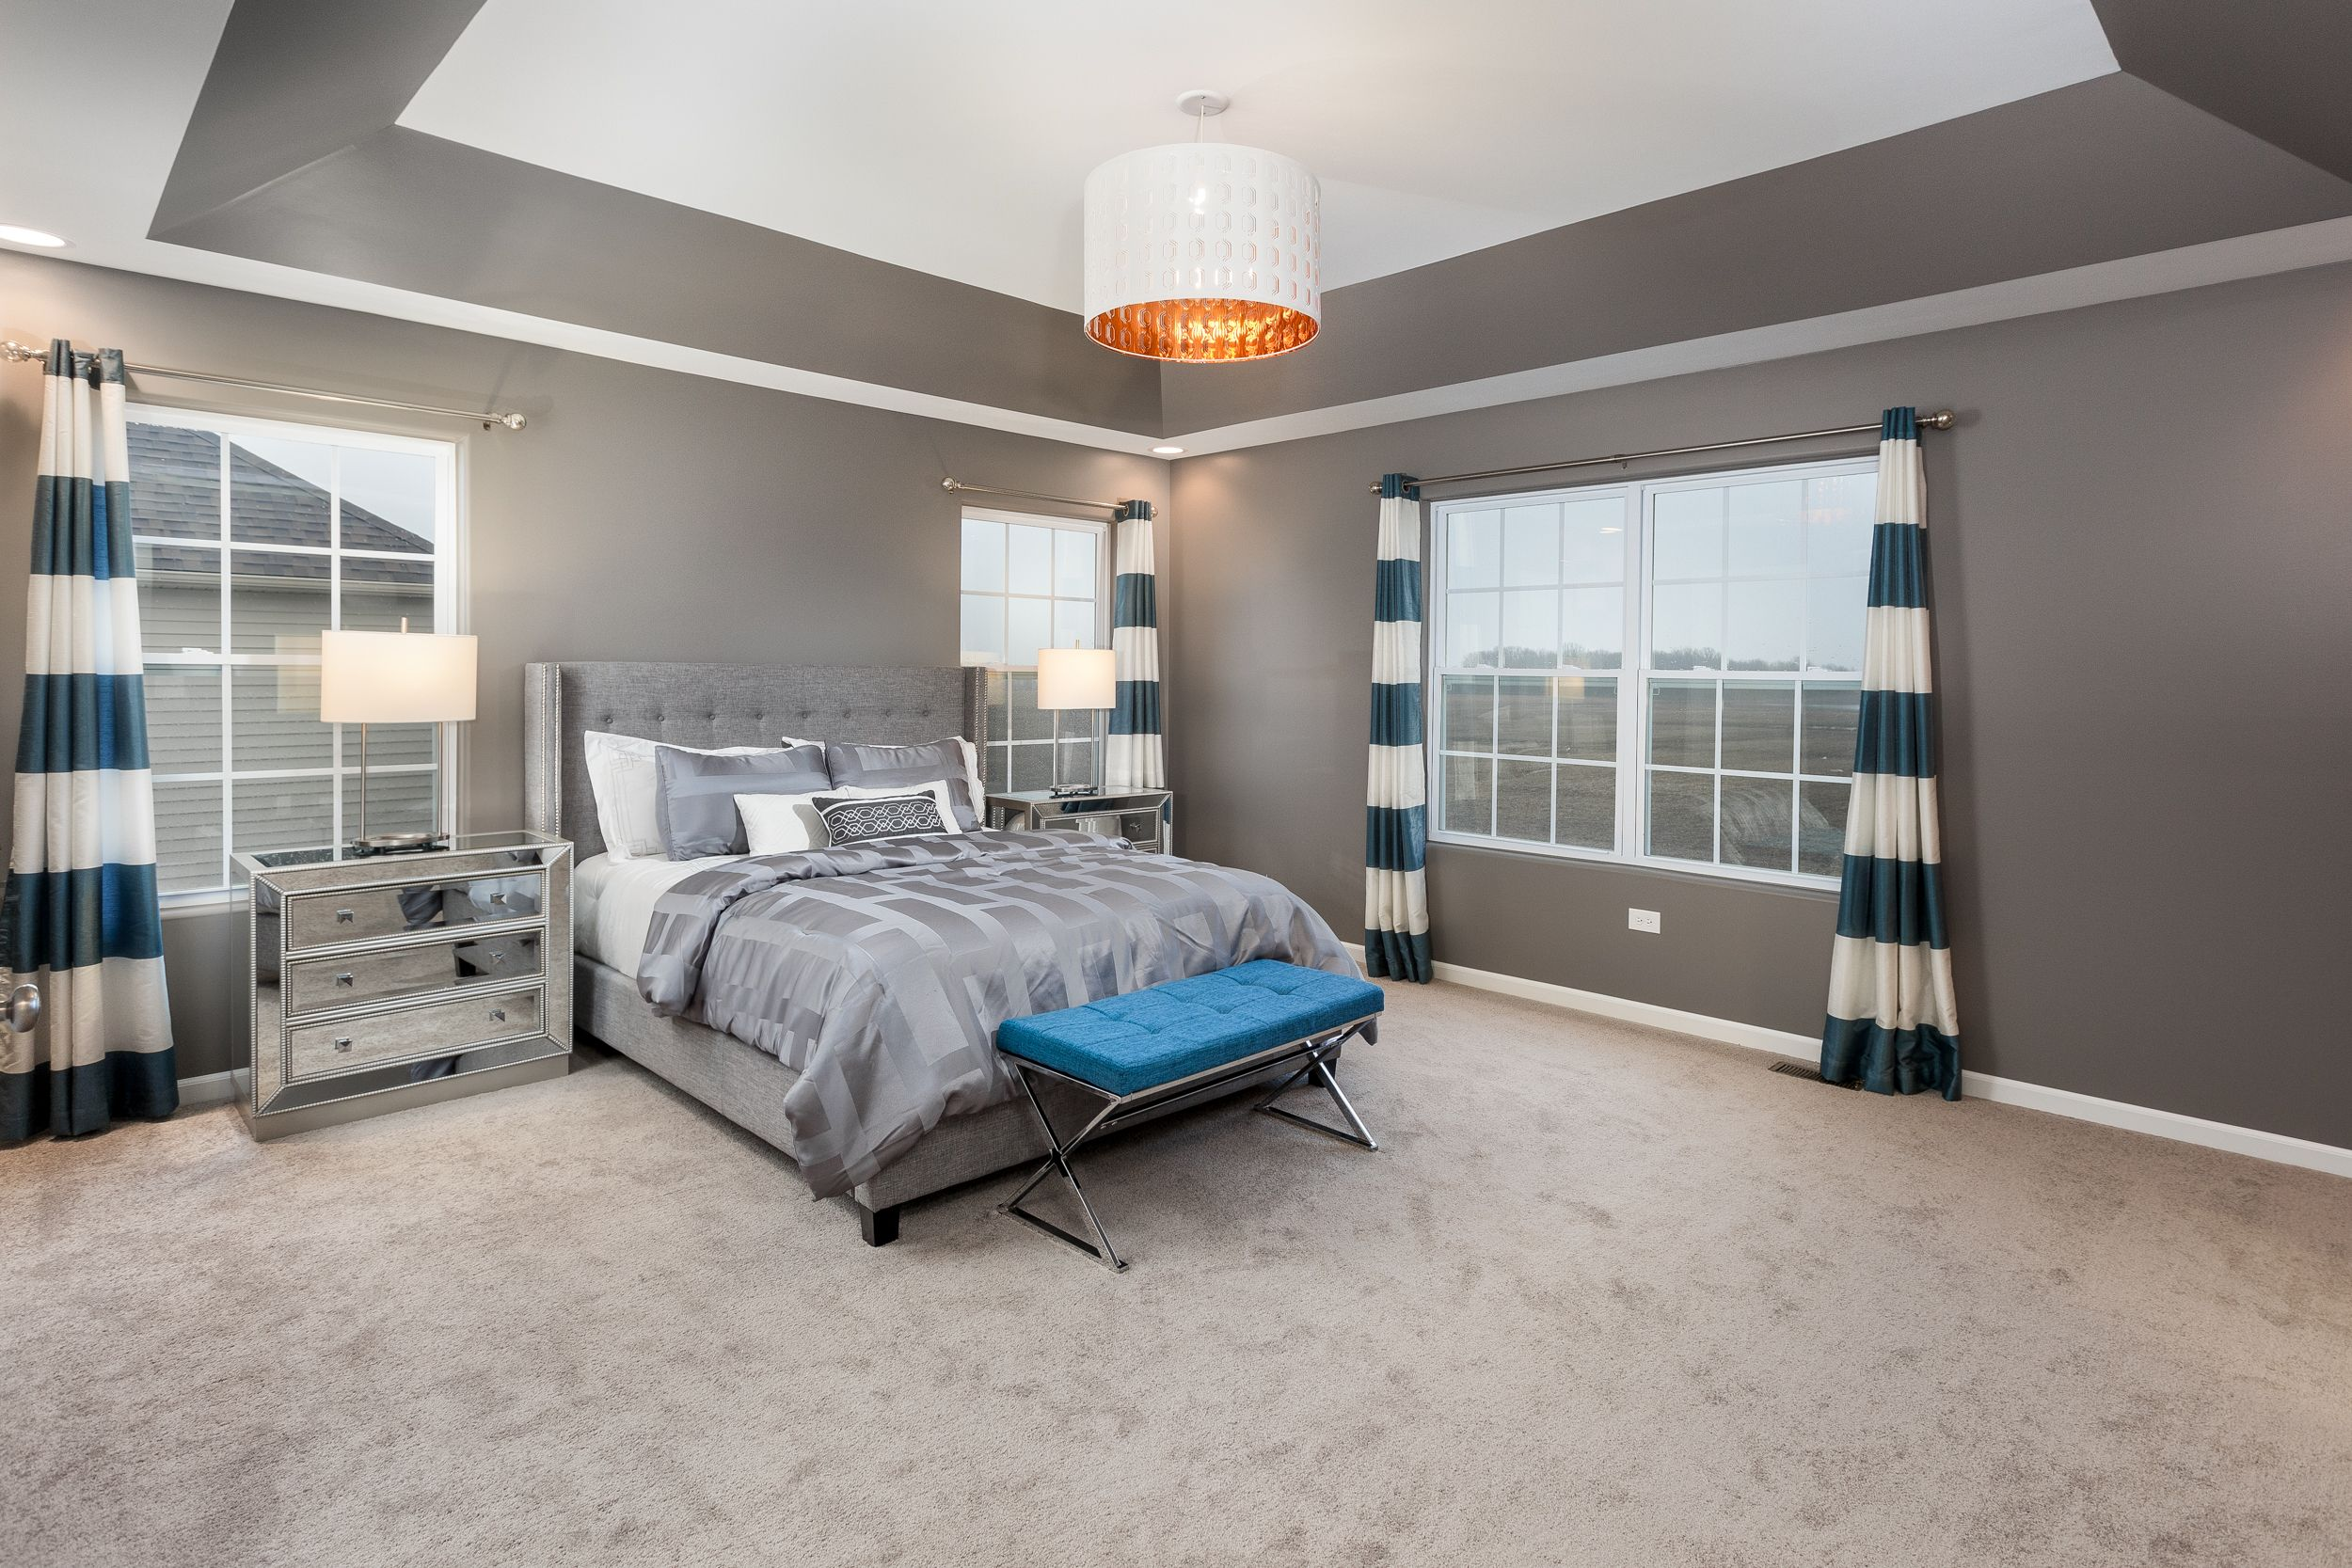 Bedroom featured in The Sycamore By Meadowbrook Builders in Chicago, IL